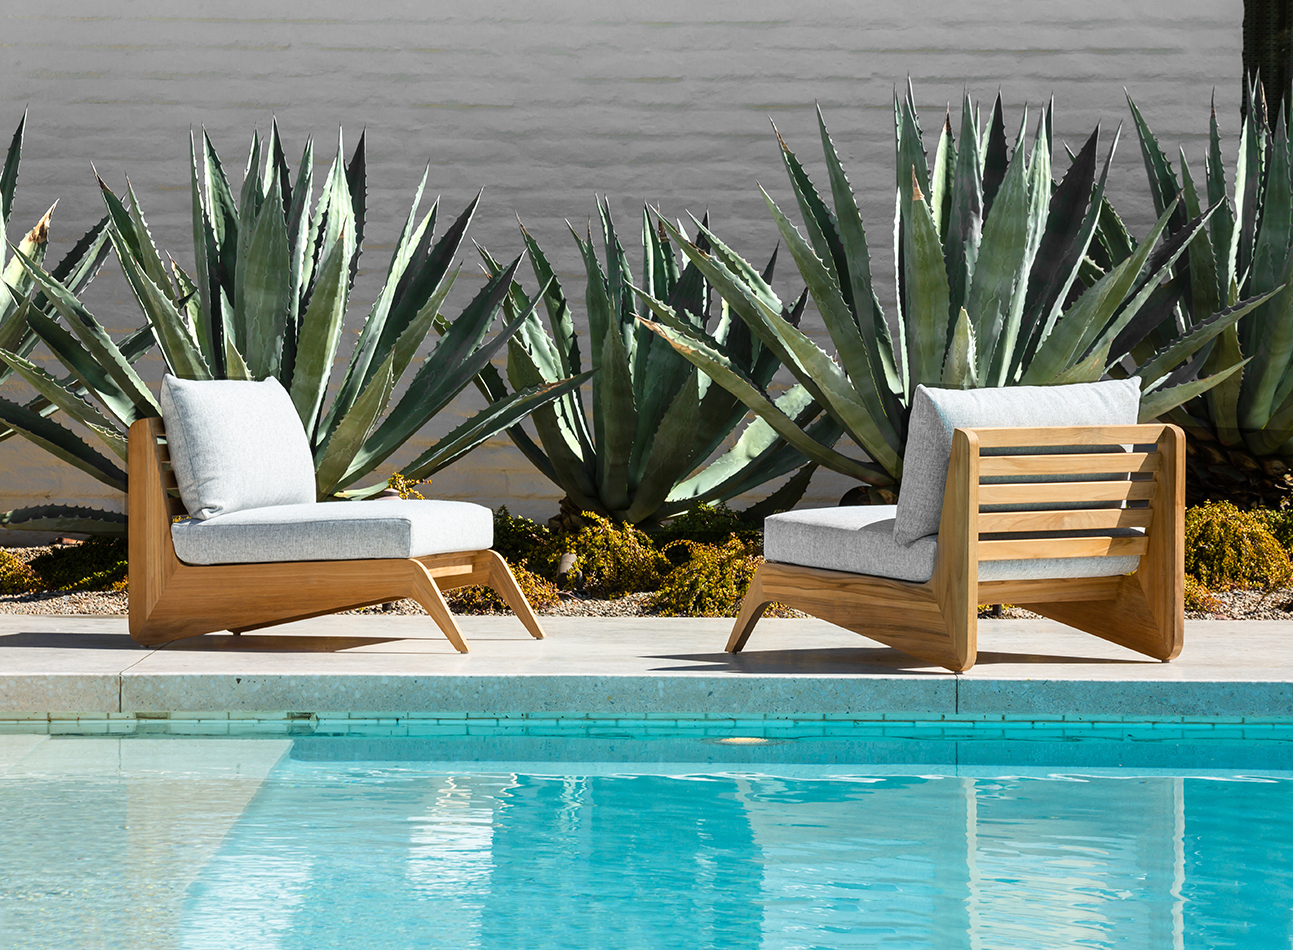 Martyn Lawrence Bullard's MLB collection of outdoor furniture for Harbour Outdoor